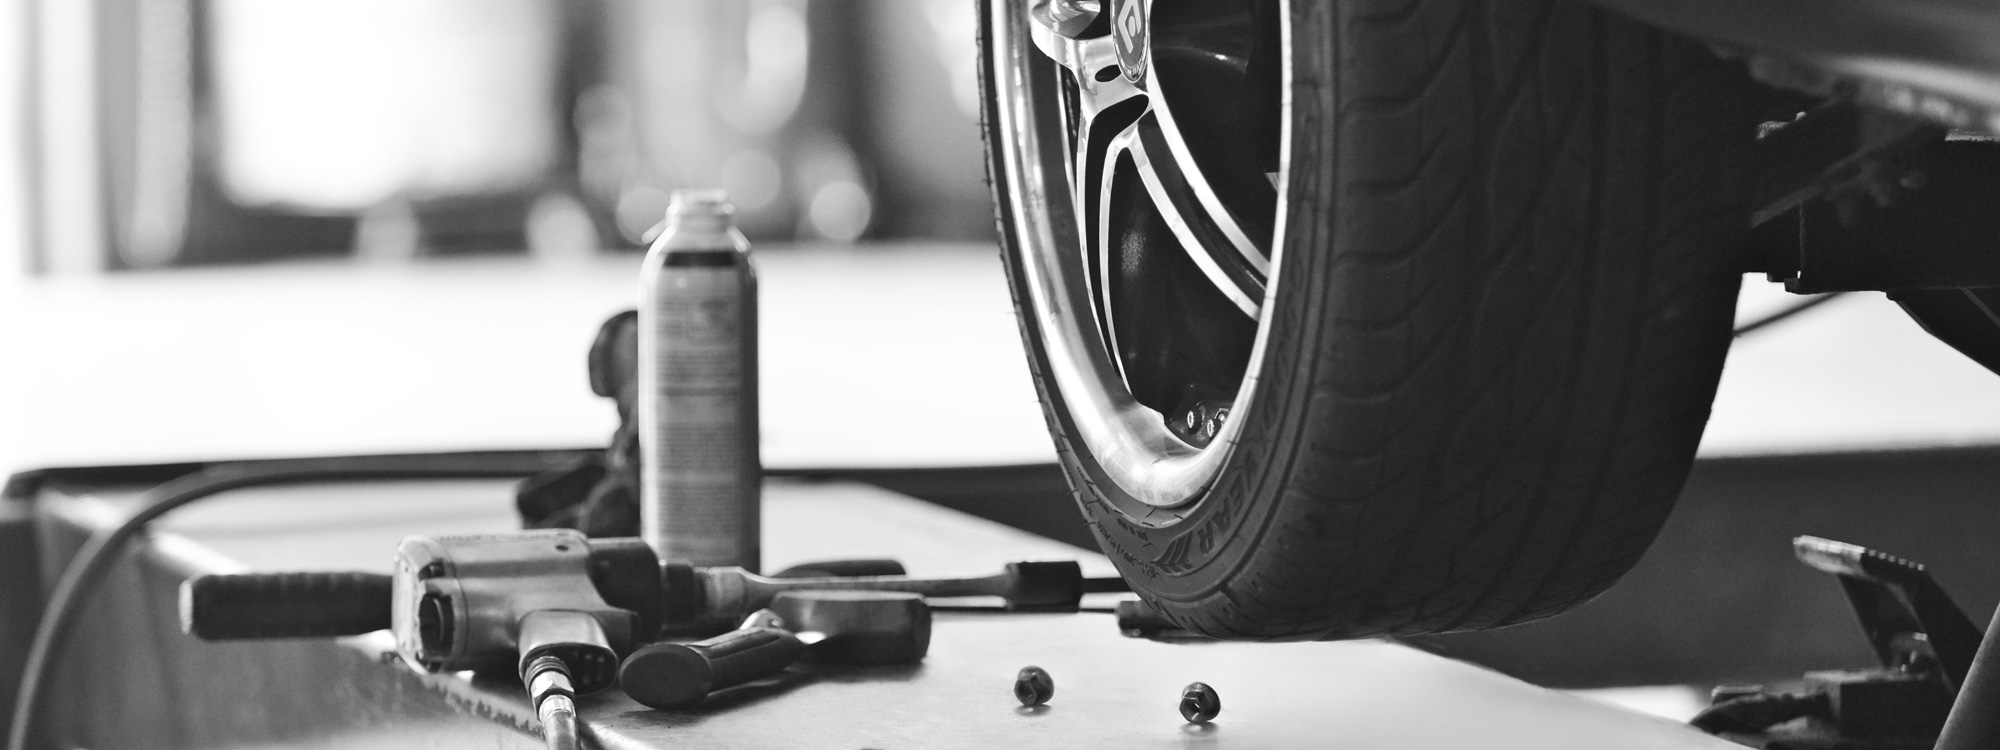 Precision in Calgary provides tire repair